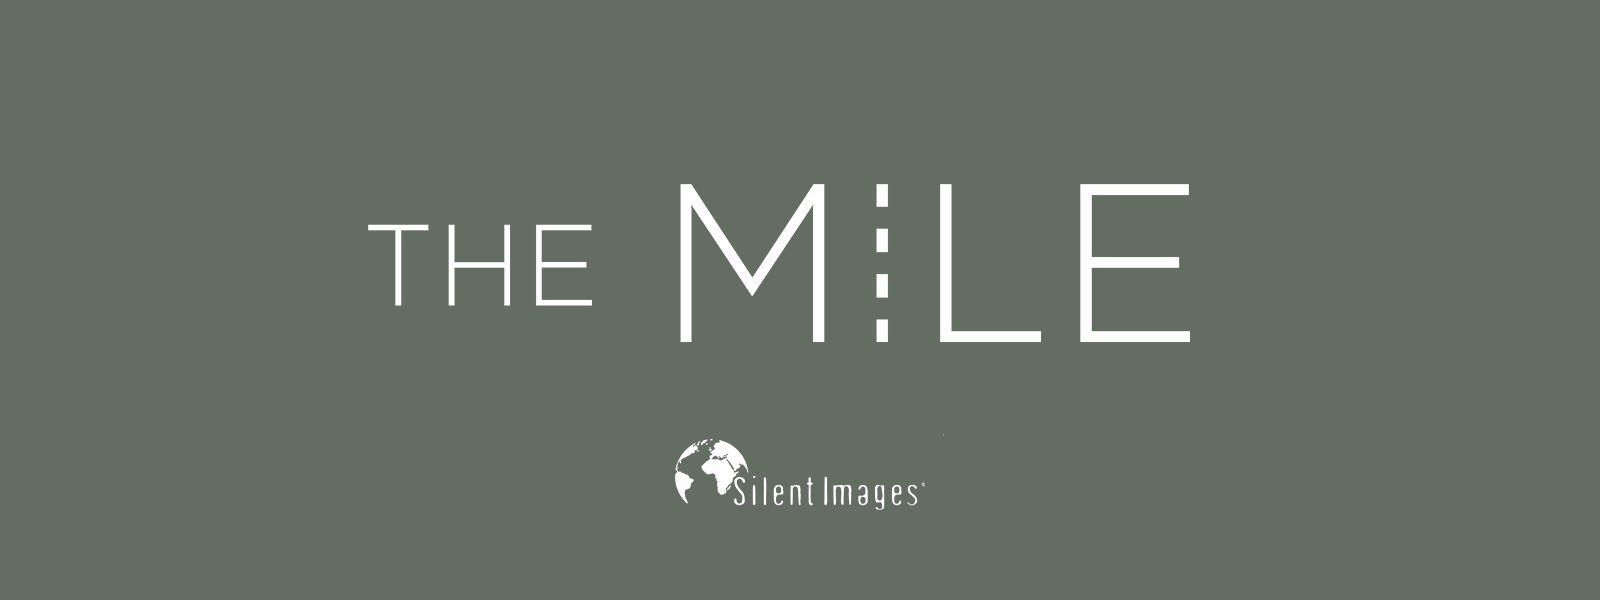 Brothers: The Mile Project